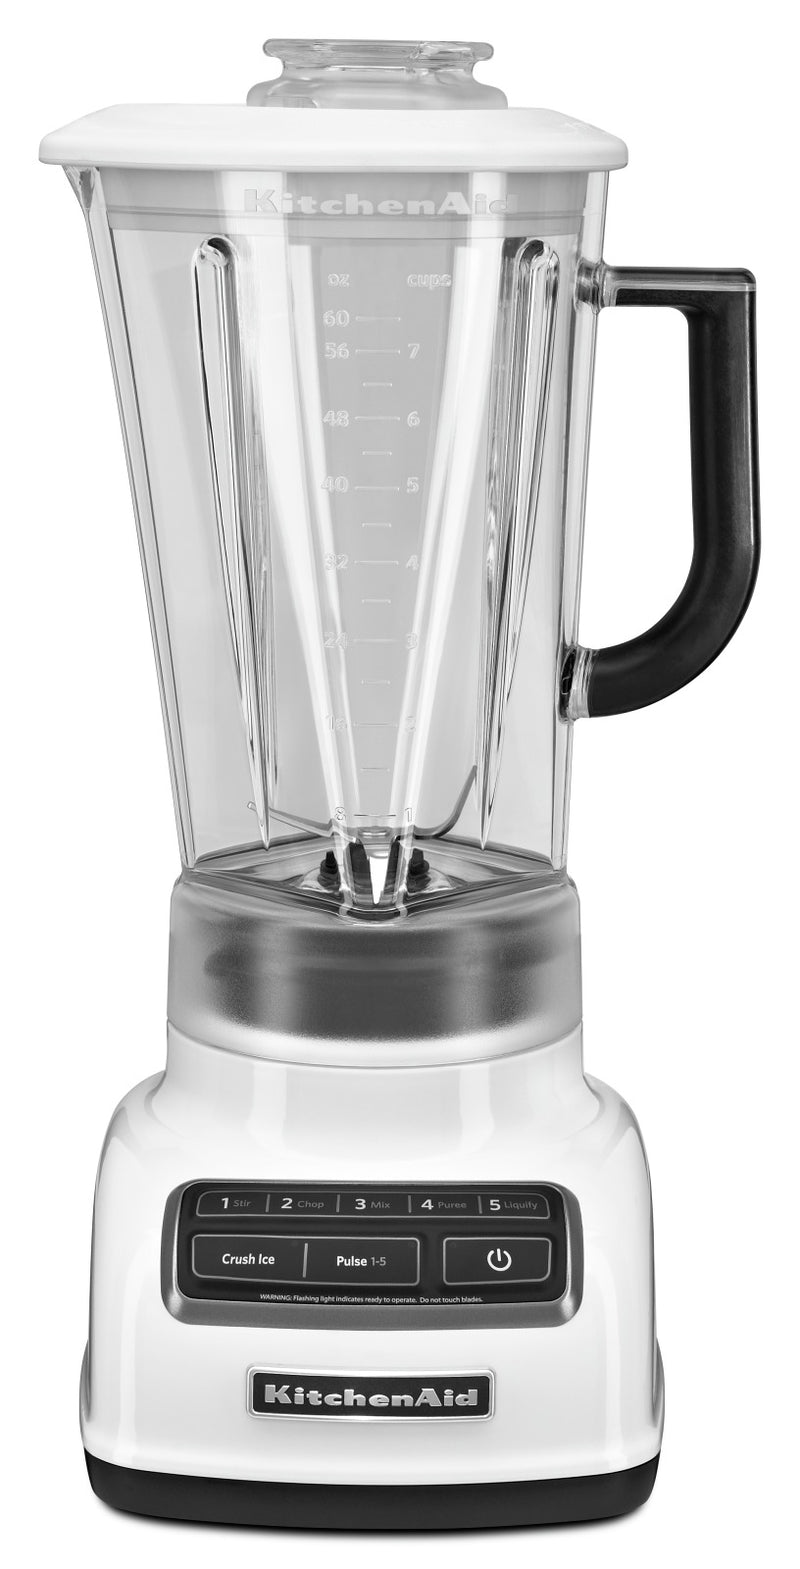 KitchenAid Five-Speed Diamond Blender - KSB1575WH|Mélangeur à base losange à cinq vitesses KitchenAid - KSB1575WH